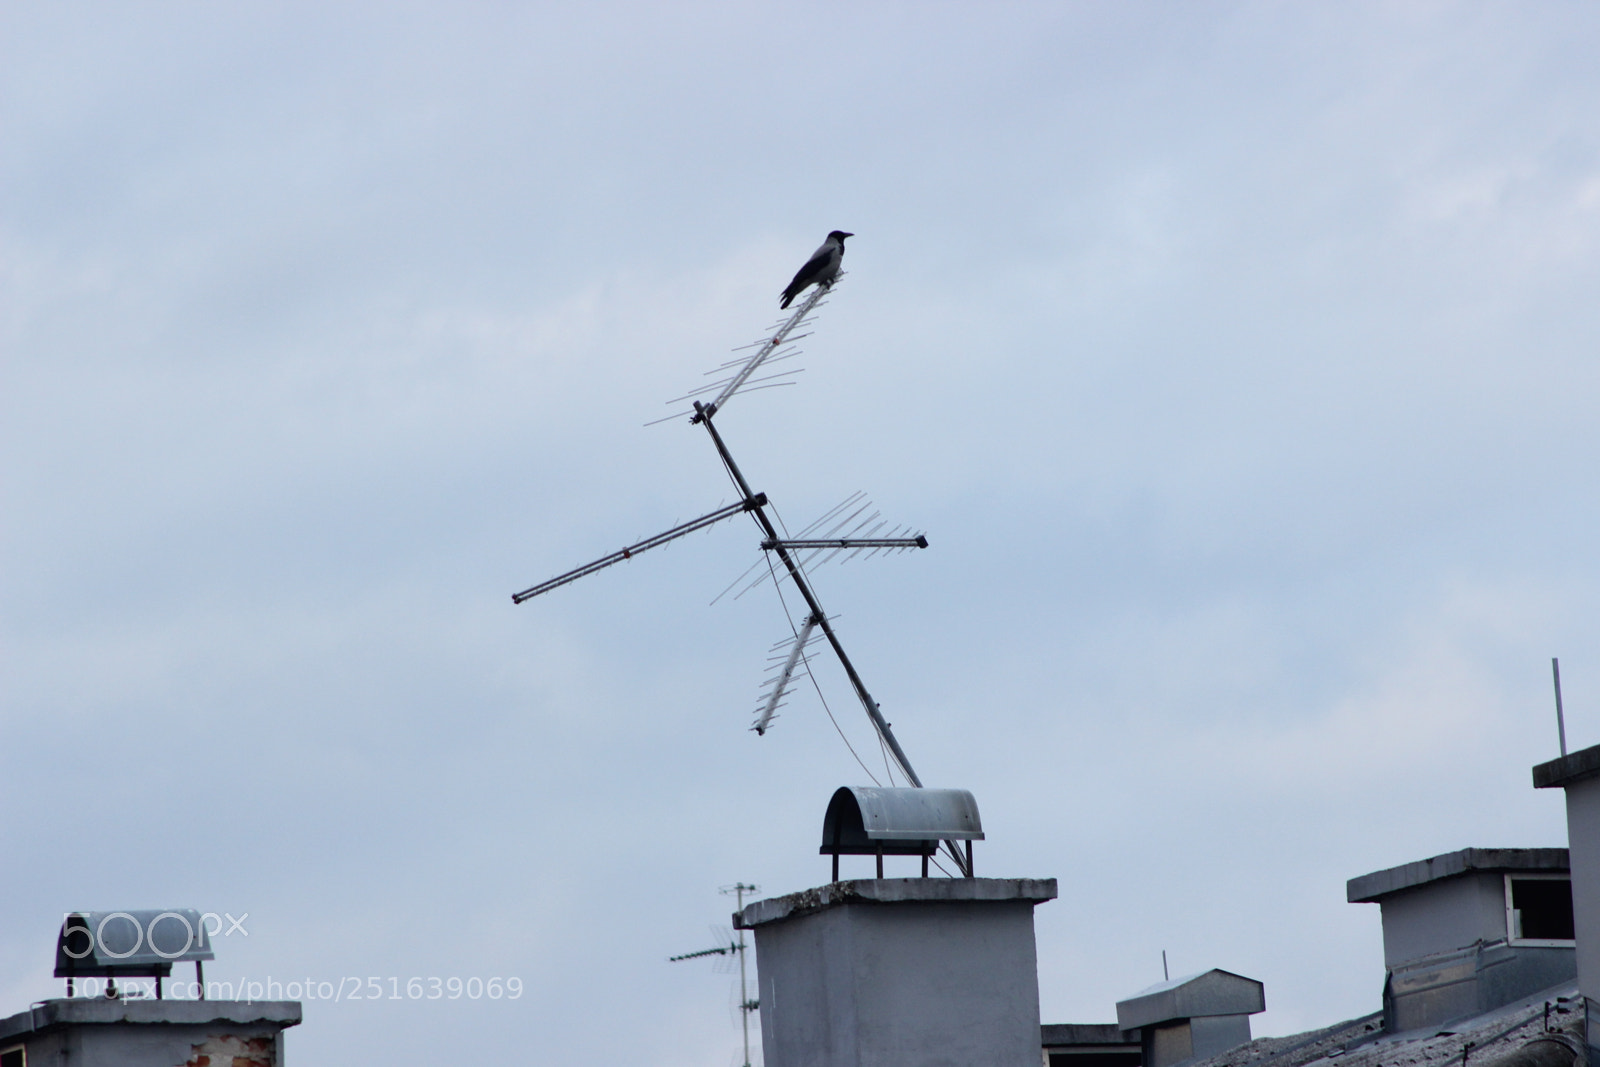 """Canon EOS 600D (Rebel EOS T3i / EOS Kiss X5) + Canon EF 90-300mm F4.5-5.6 USM sample photo. """"Sitting crow"""" photography"""